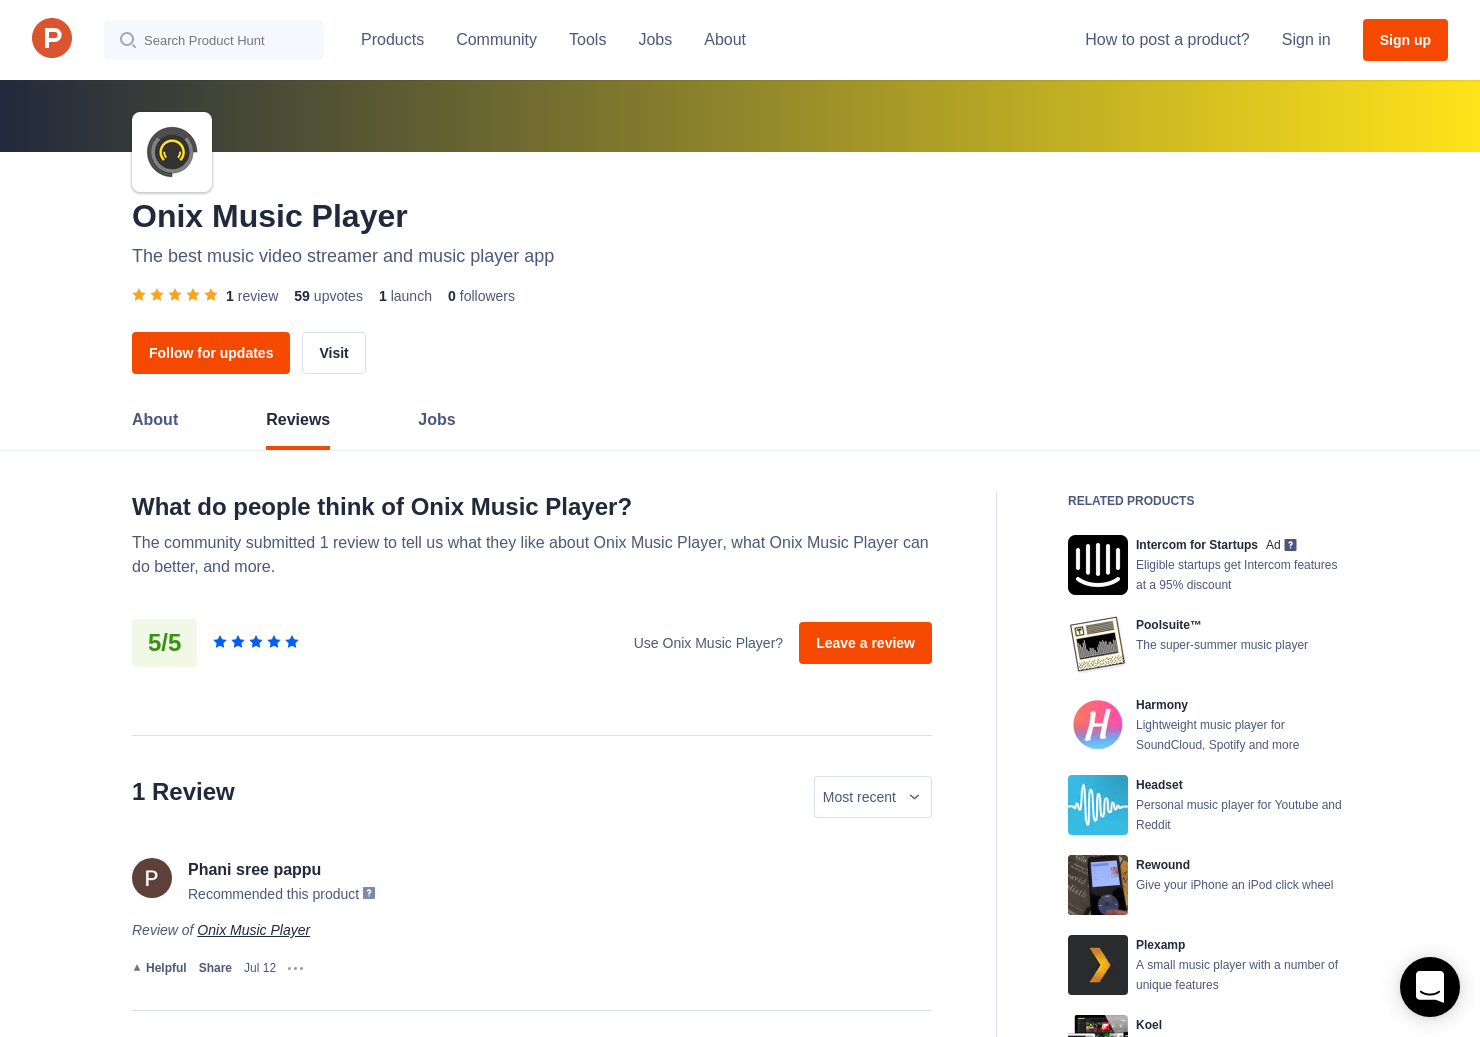 Onix Music Player Reviews - Pros, Cons and Rating | Product Hunt